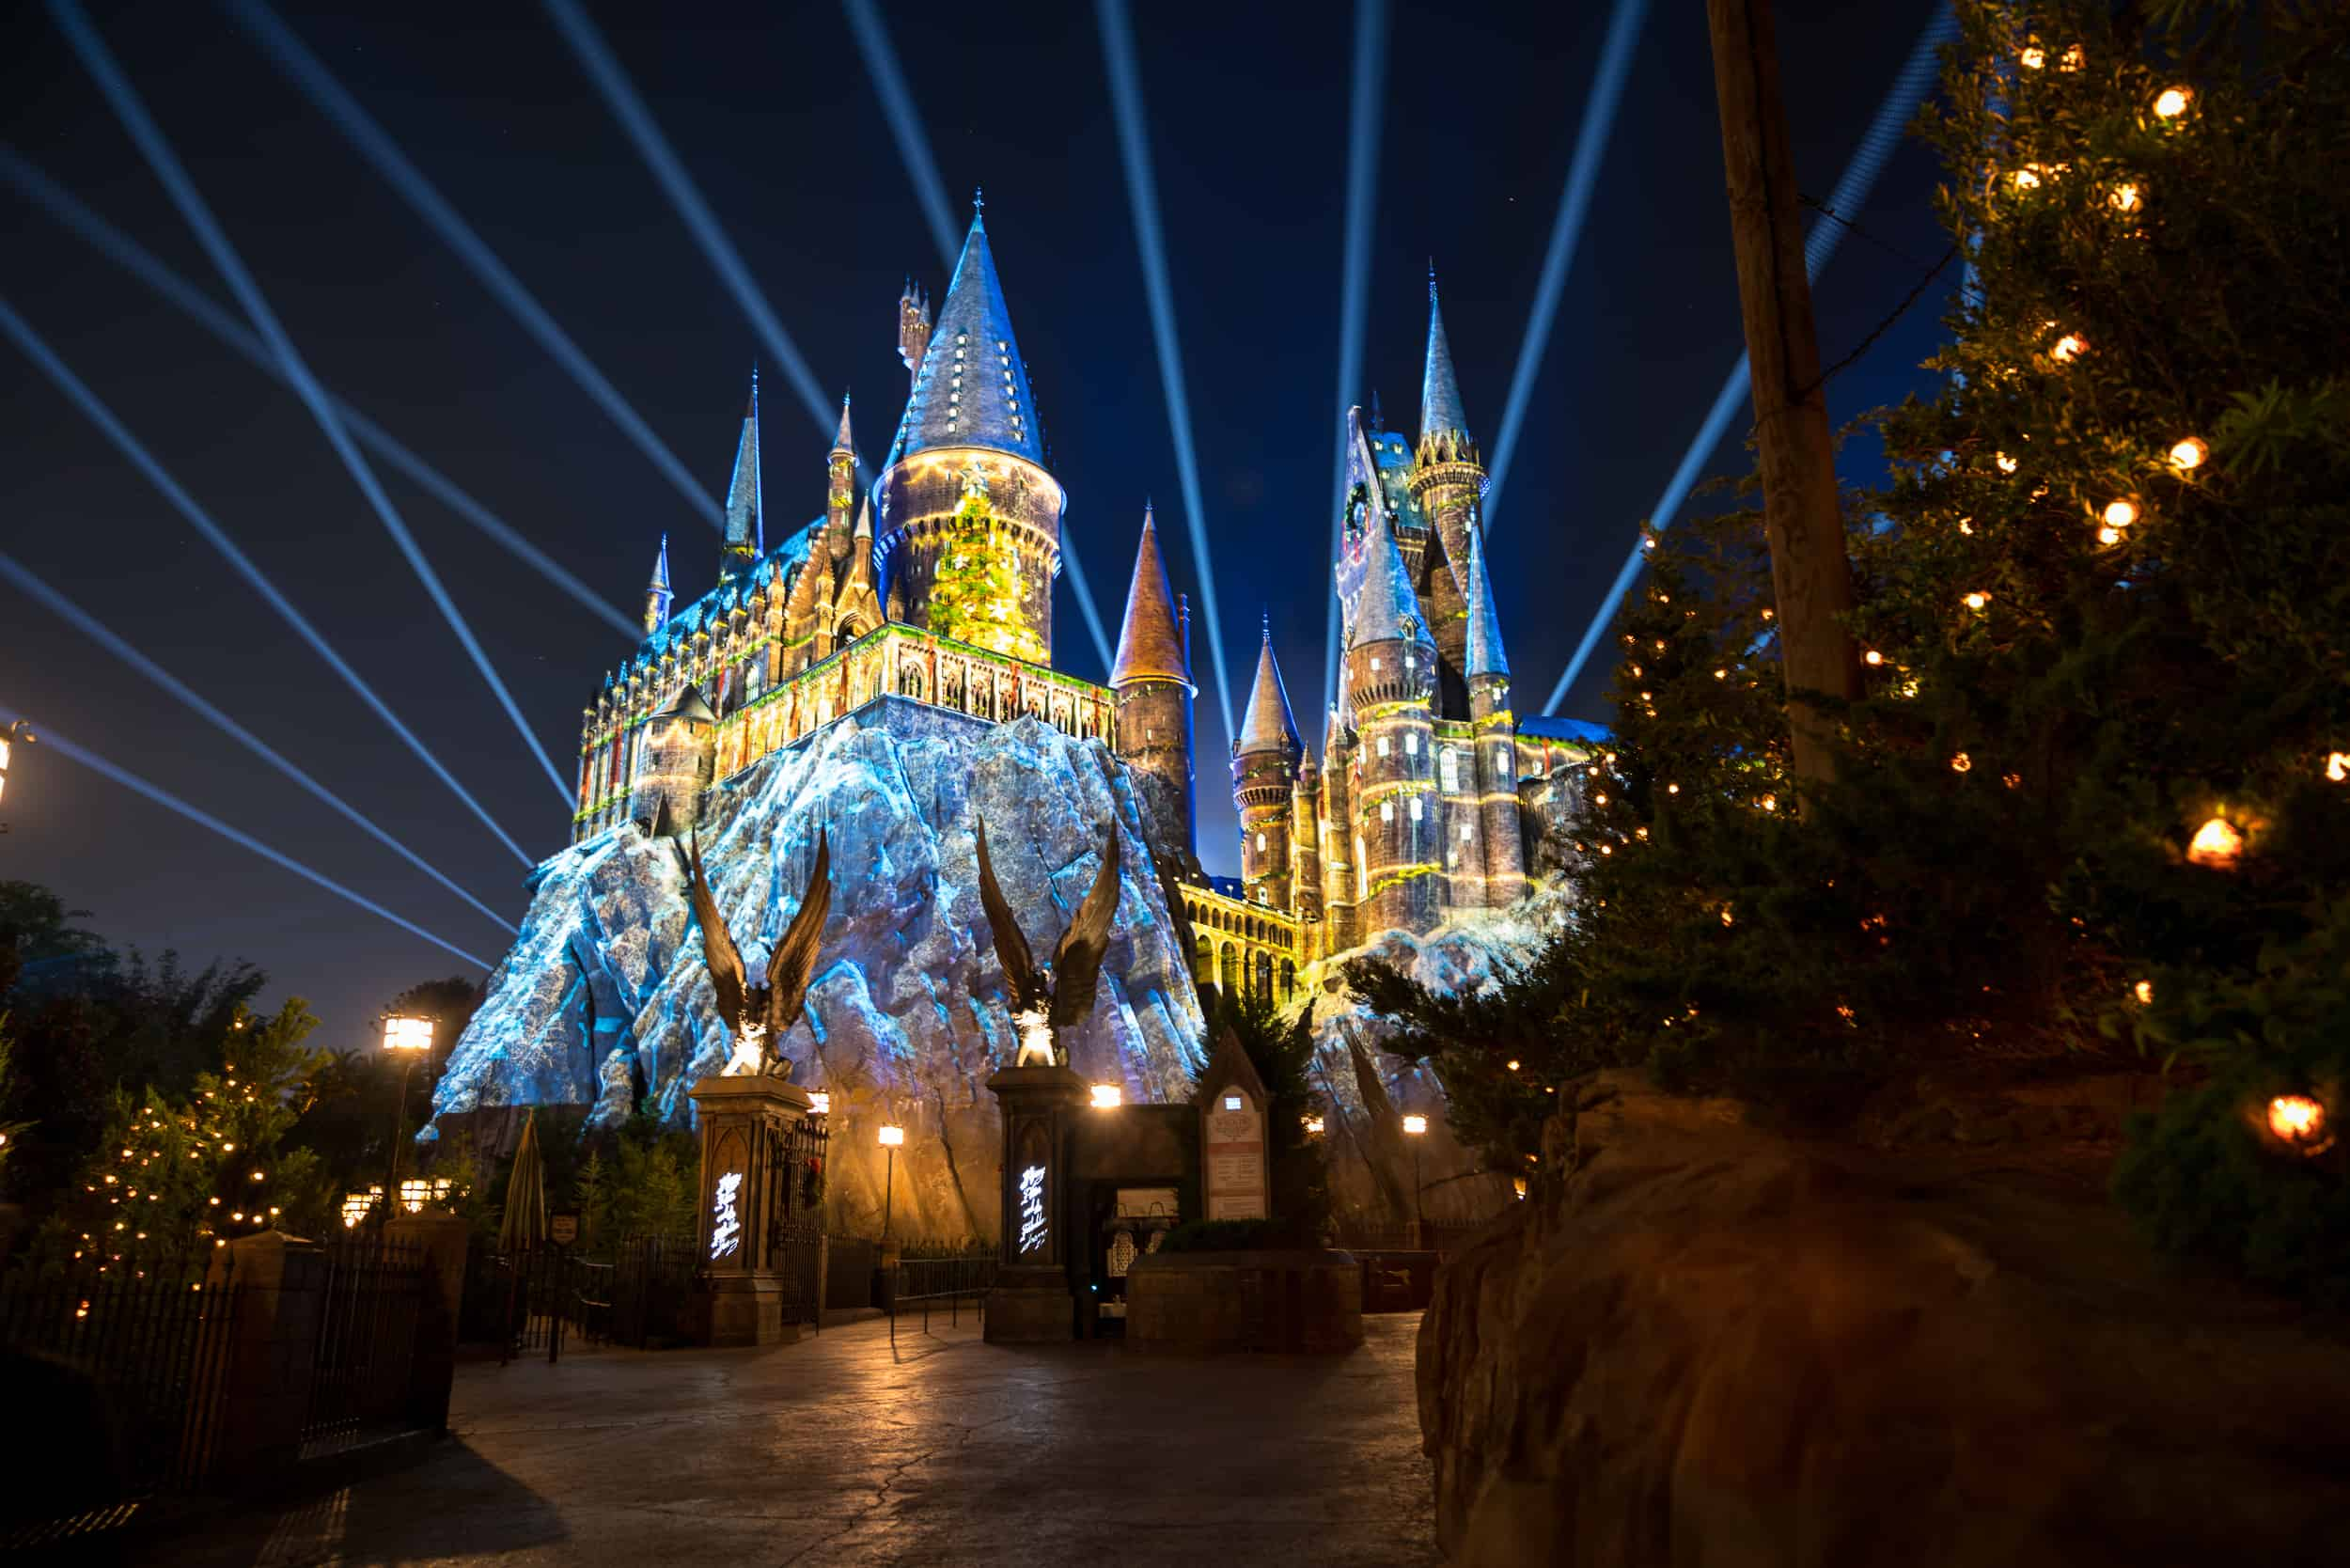 Harry Potter projection show (and more!) coming to Universal Orlando